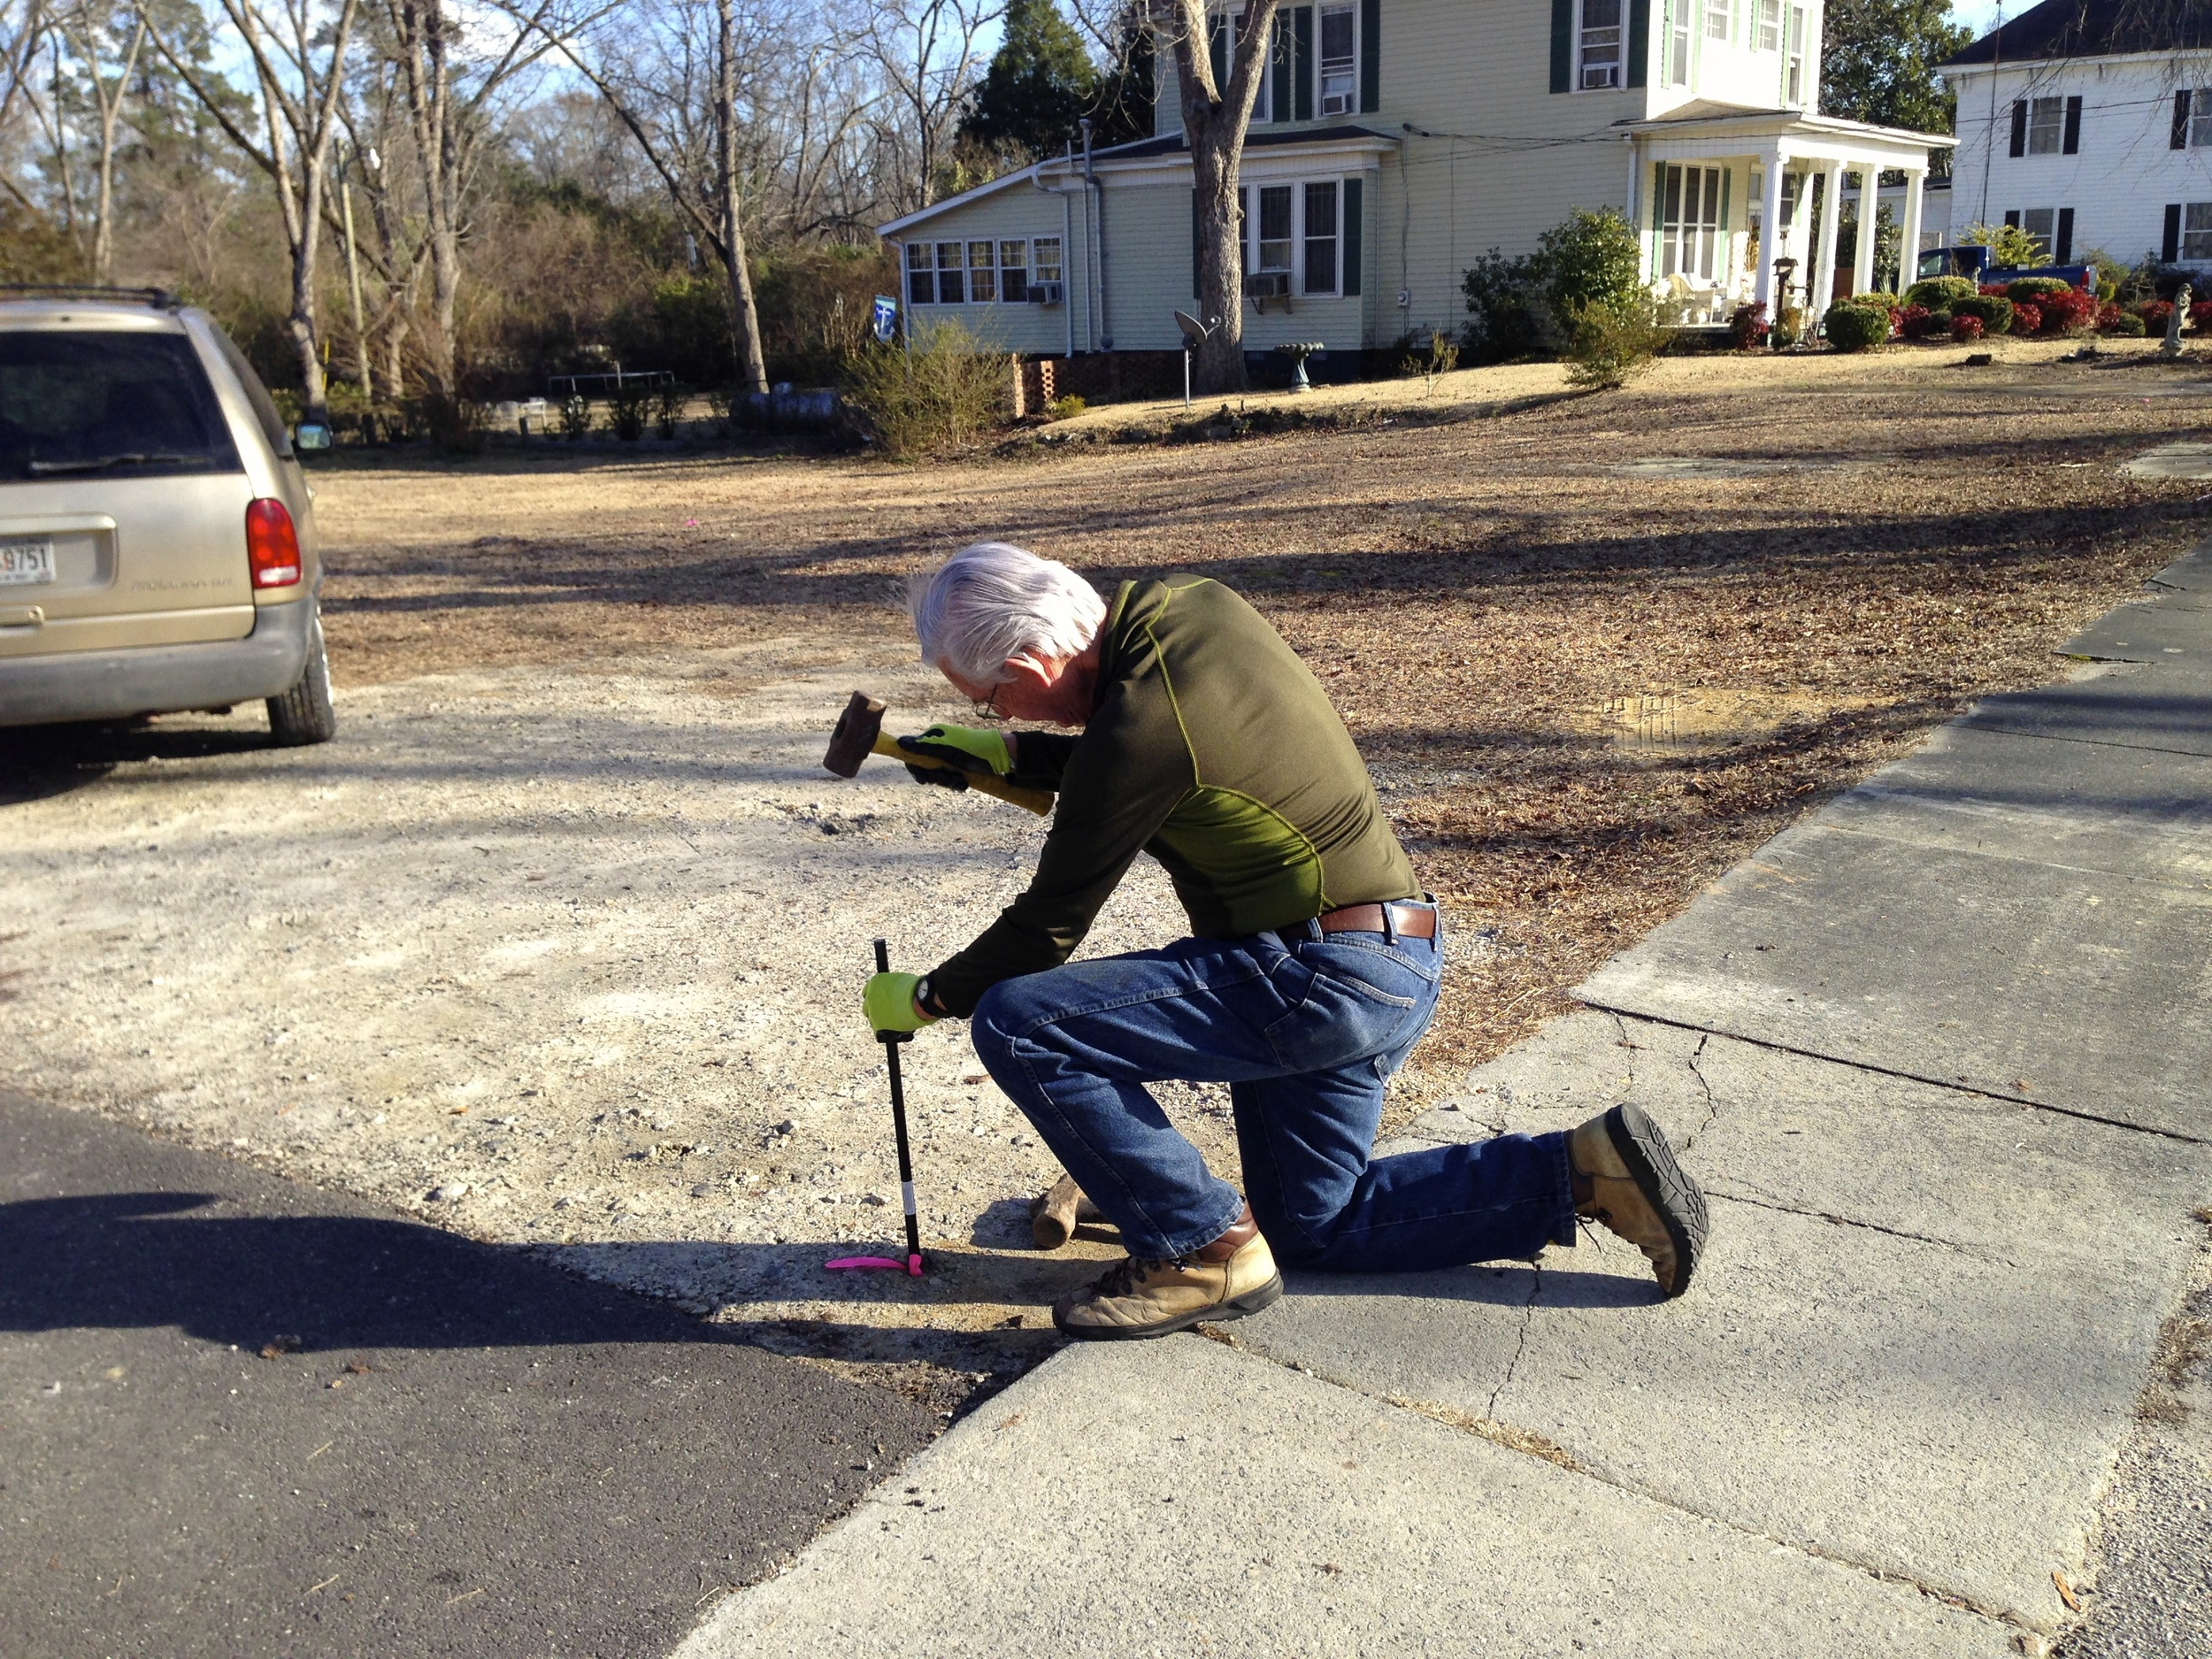 Robert hammers in the surveyor's marker at the top of the east lot.